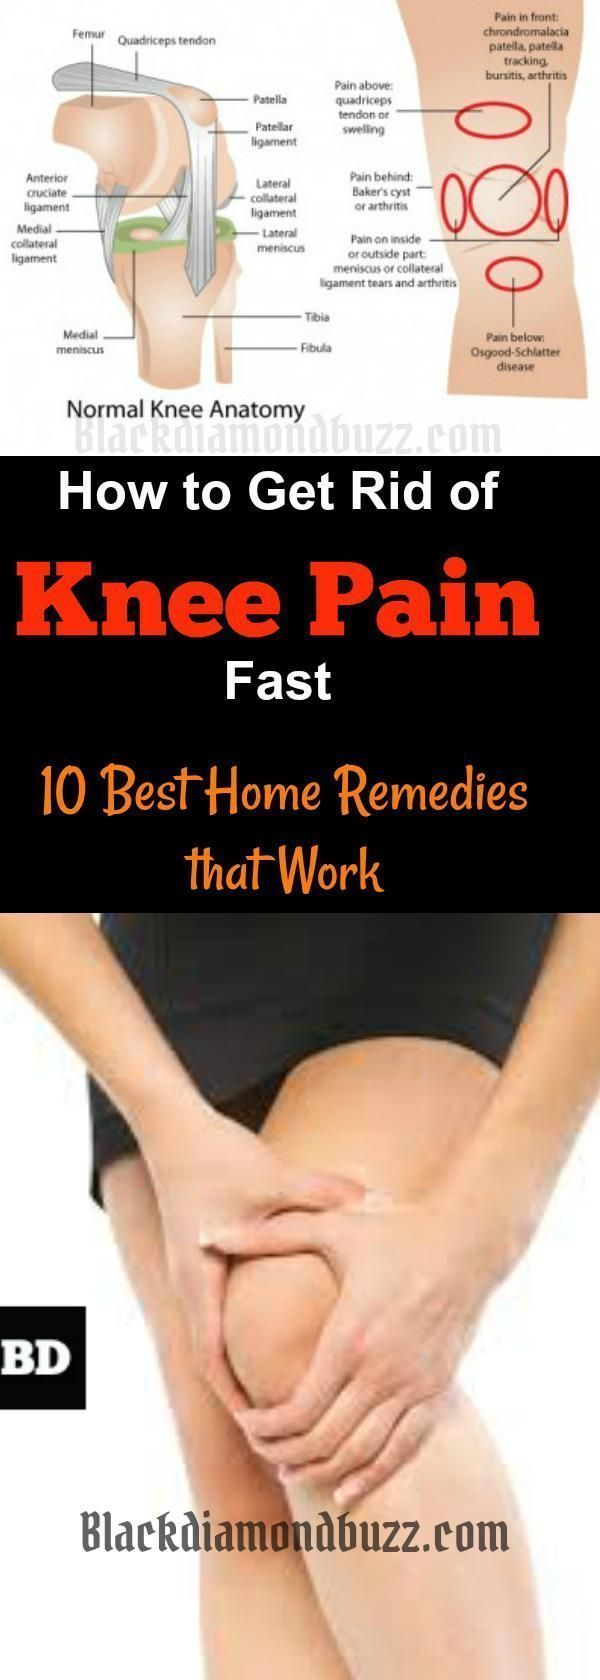 How to Get Rid of Knee Pain Fast |10 Best Home Remedies For Knee Pain The causes of knee pain are associated with many health problems which include osteoarthritis, rheumatoid, arthritis, and unhealthy diet, lack of vitamin D, knee injuries and surgery. https://www.blackdiamondbuzz.com/how-to-get-rid-of-knee-pain-fast/ #Diettipsforthyroidproblems #Thyroidproblemsanddiet #Exerciseforthyroidproblems